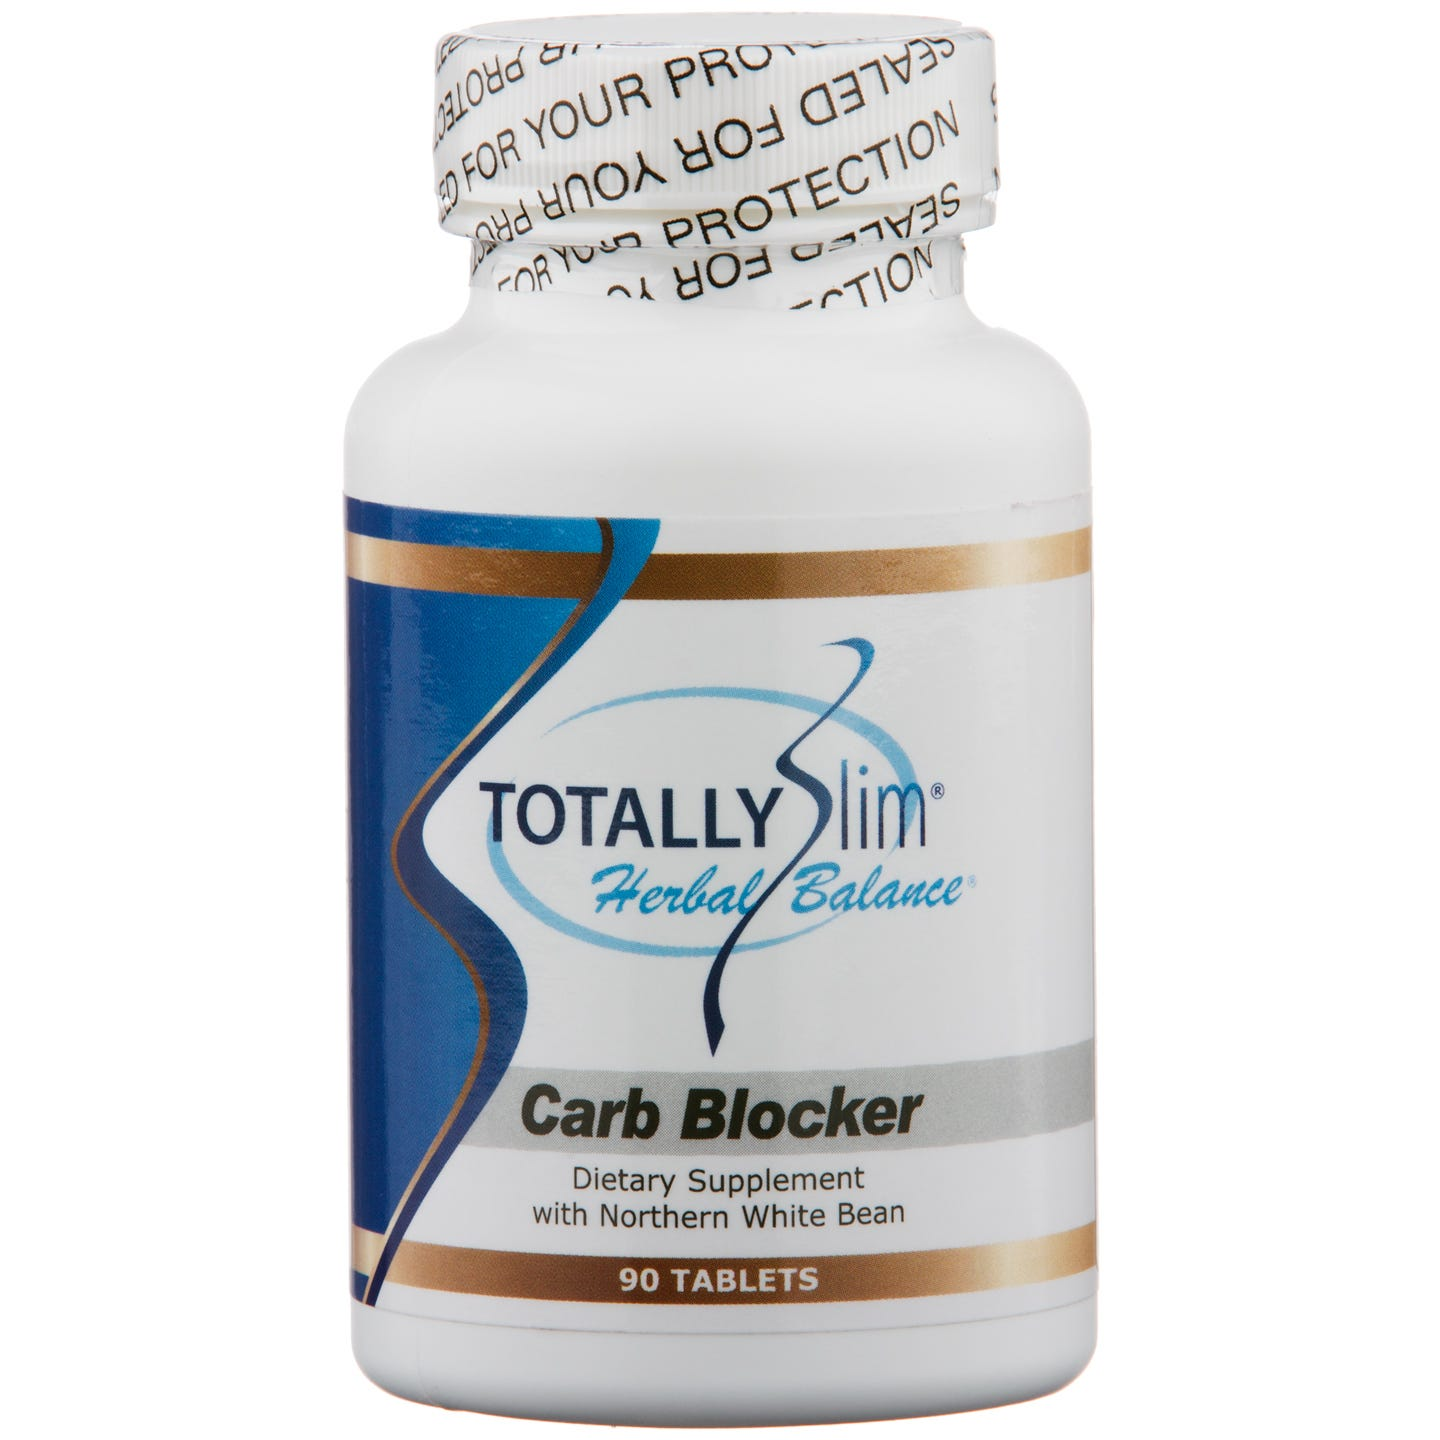 Herbal Balance Carb Blocker (90 ct) - Totally Slim - Rapid Diet Weight Loss Products Shop